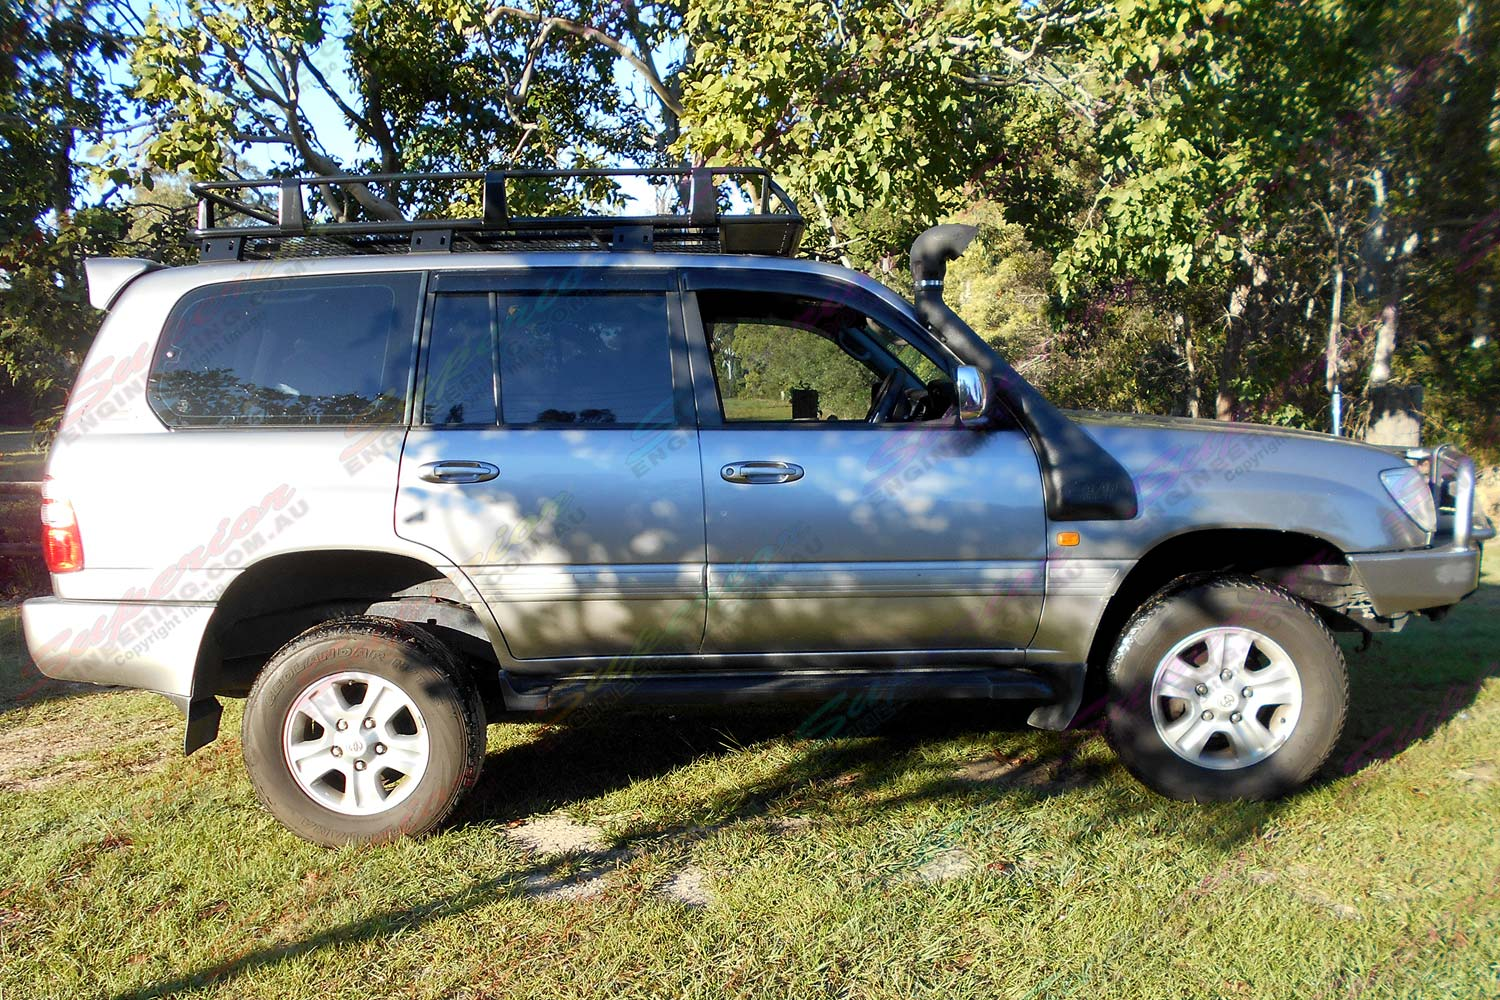 100 Series Landcruiser 2 Inch Bilstein Airbag Kit 4x4 Airbags Toyota Land Cruiser Lift After Being Fitted With A